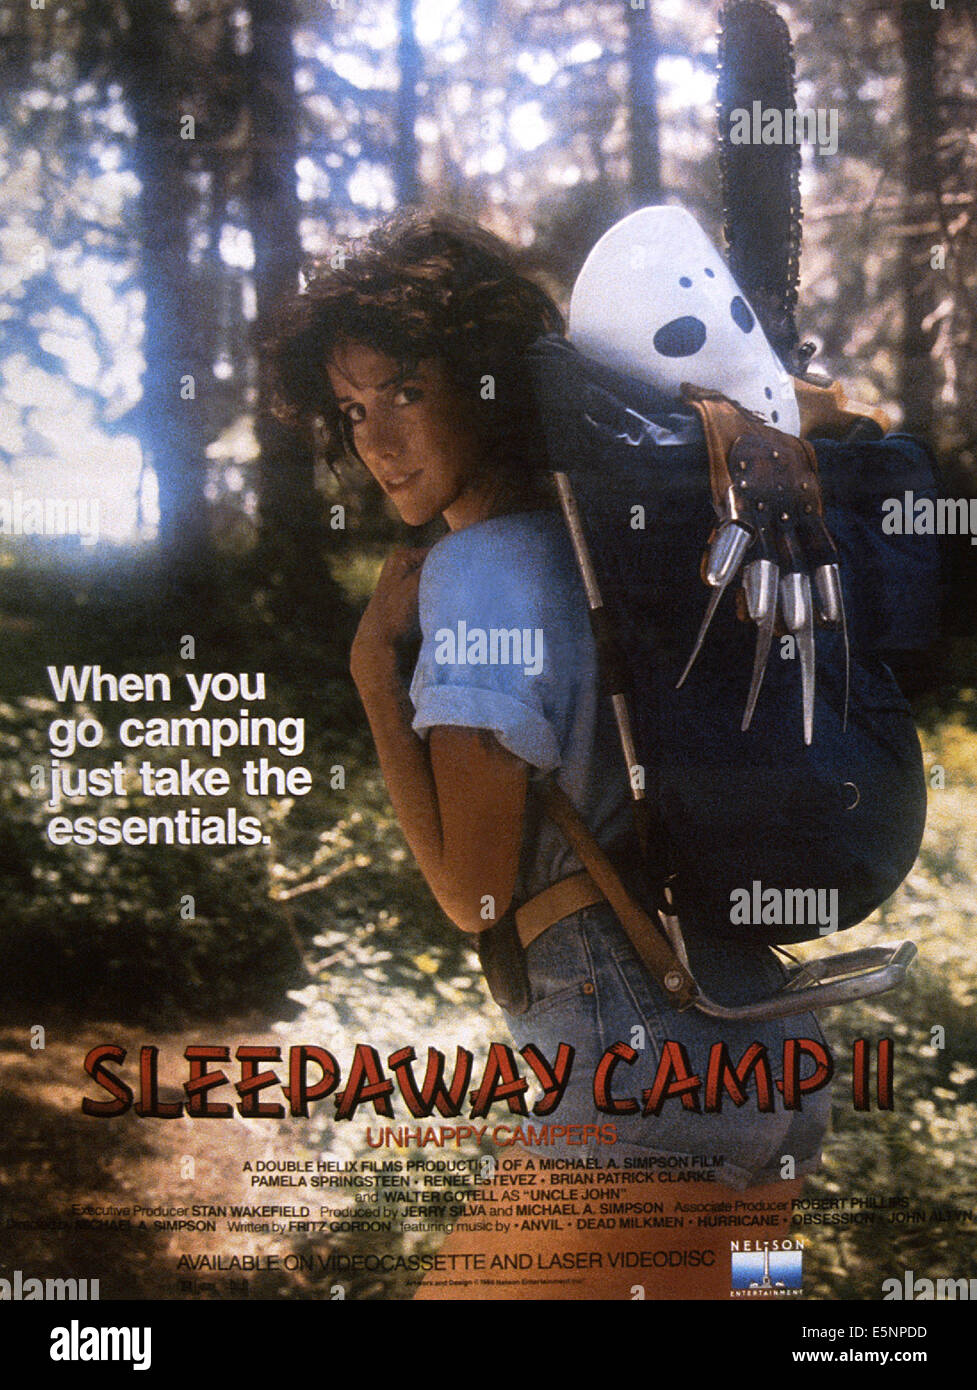 SLEEPAWAY CAMP II UNHAPPY CAMPERS US Poster Art 1988 CNelson Entertainment Courtesy Everett Collection